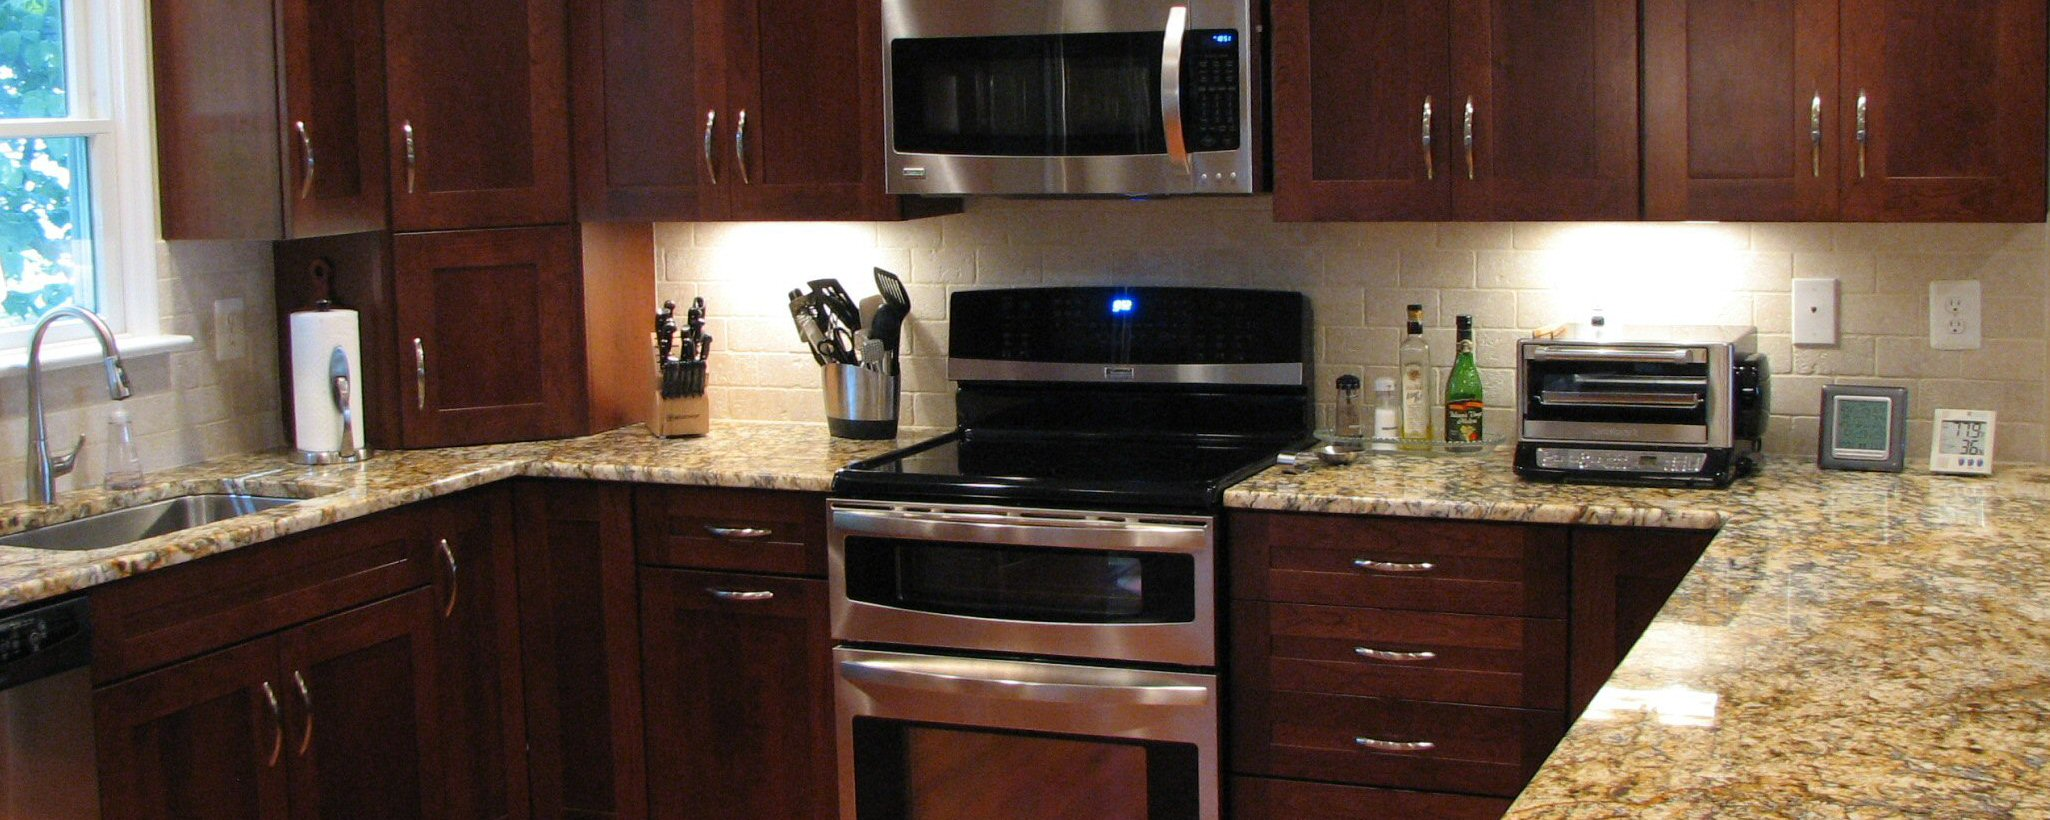 luxury selections affect kitchen remodel price cost of kitchen countertops Polished